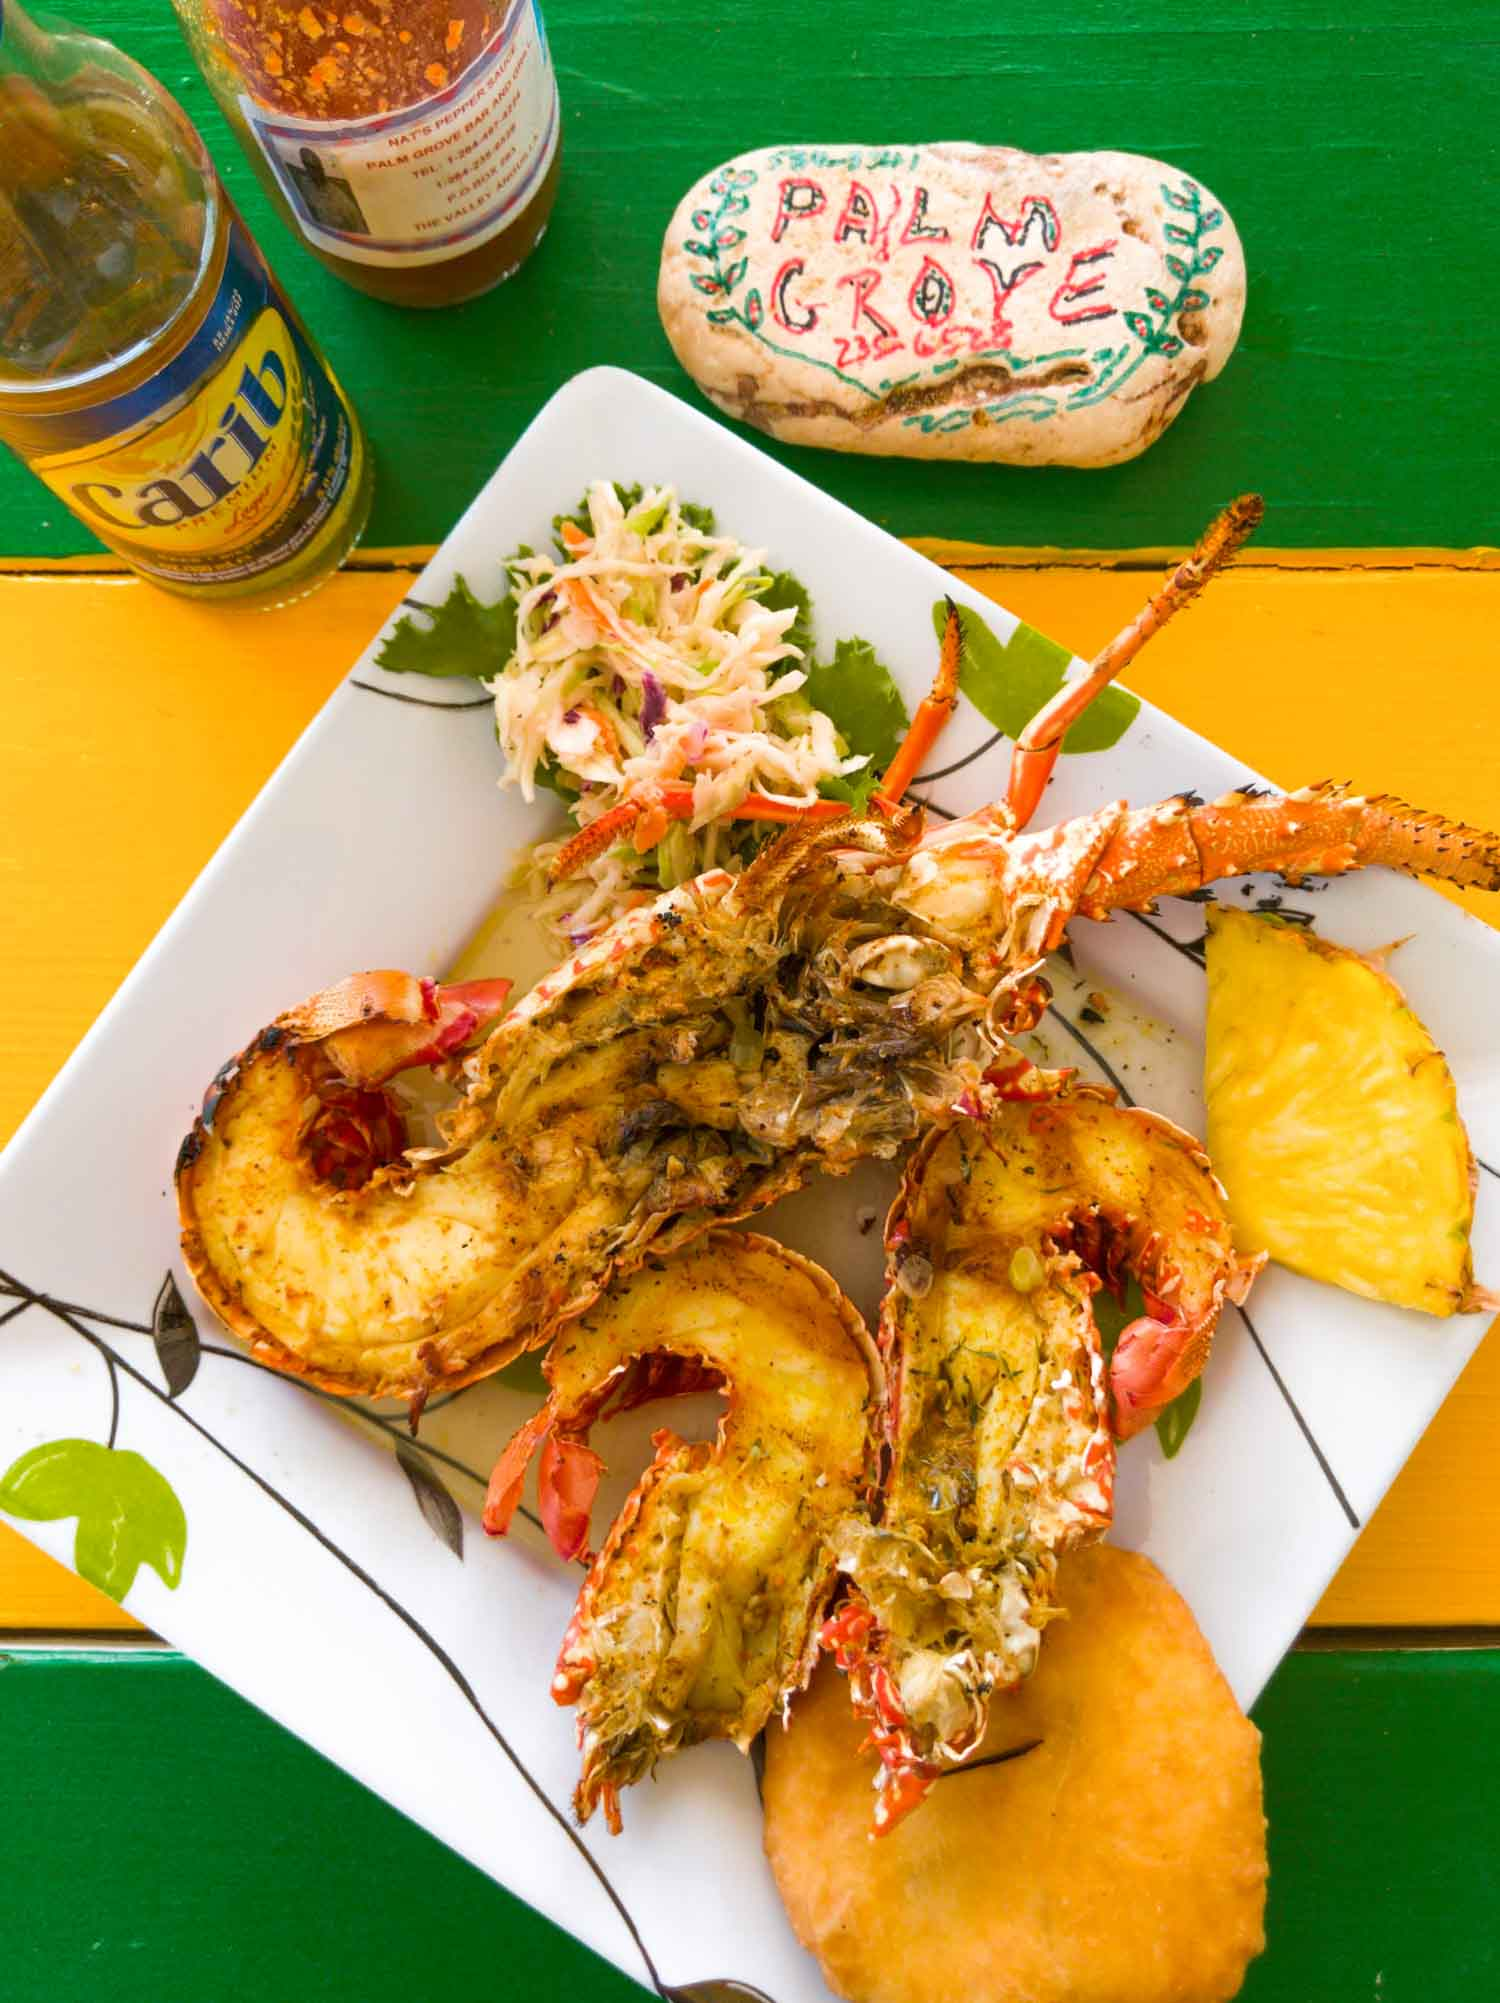 Crayfish and Caribbean lobster at Palm Grove in Anguilla, also known as Nat's Place.